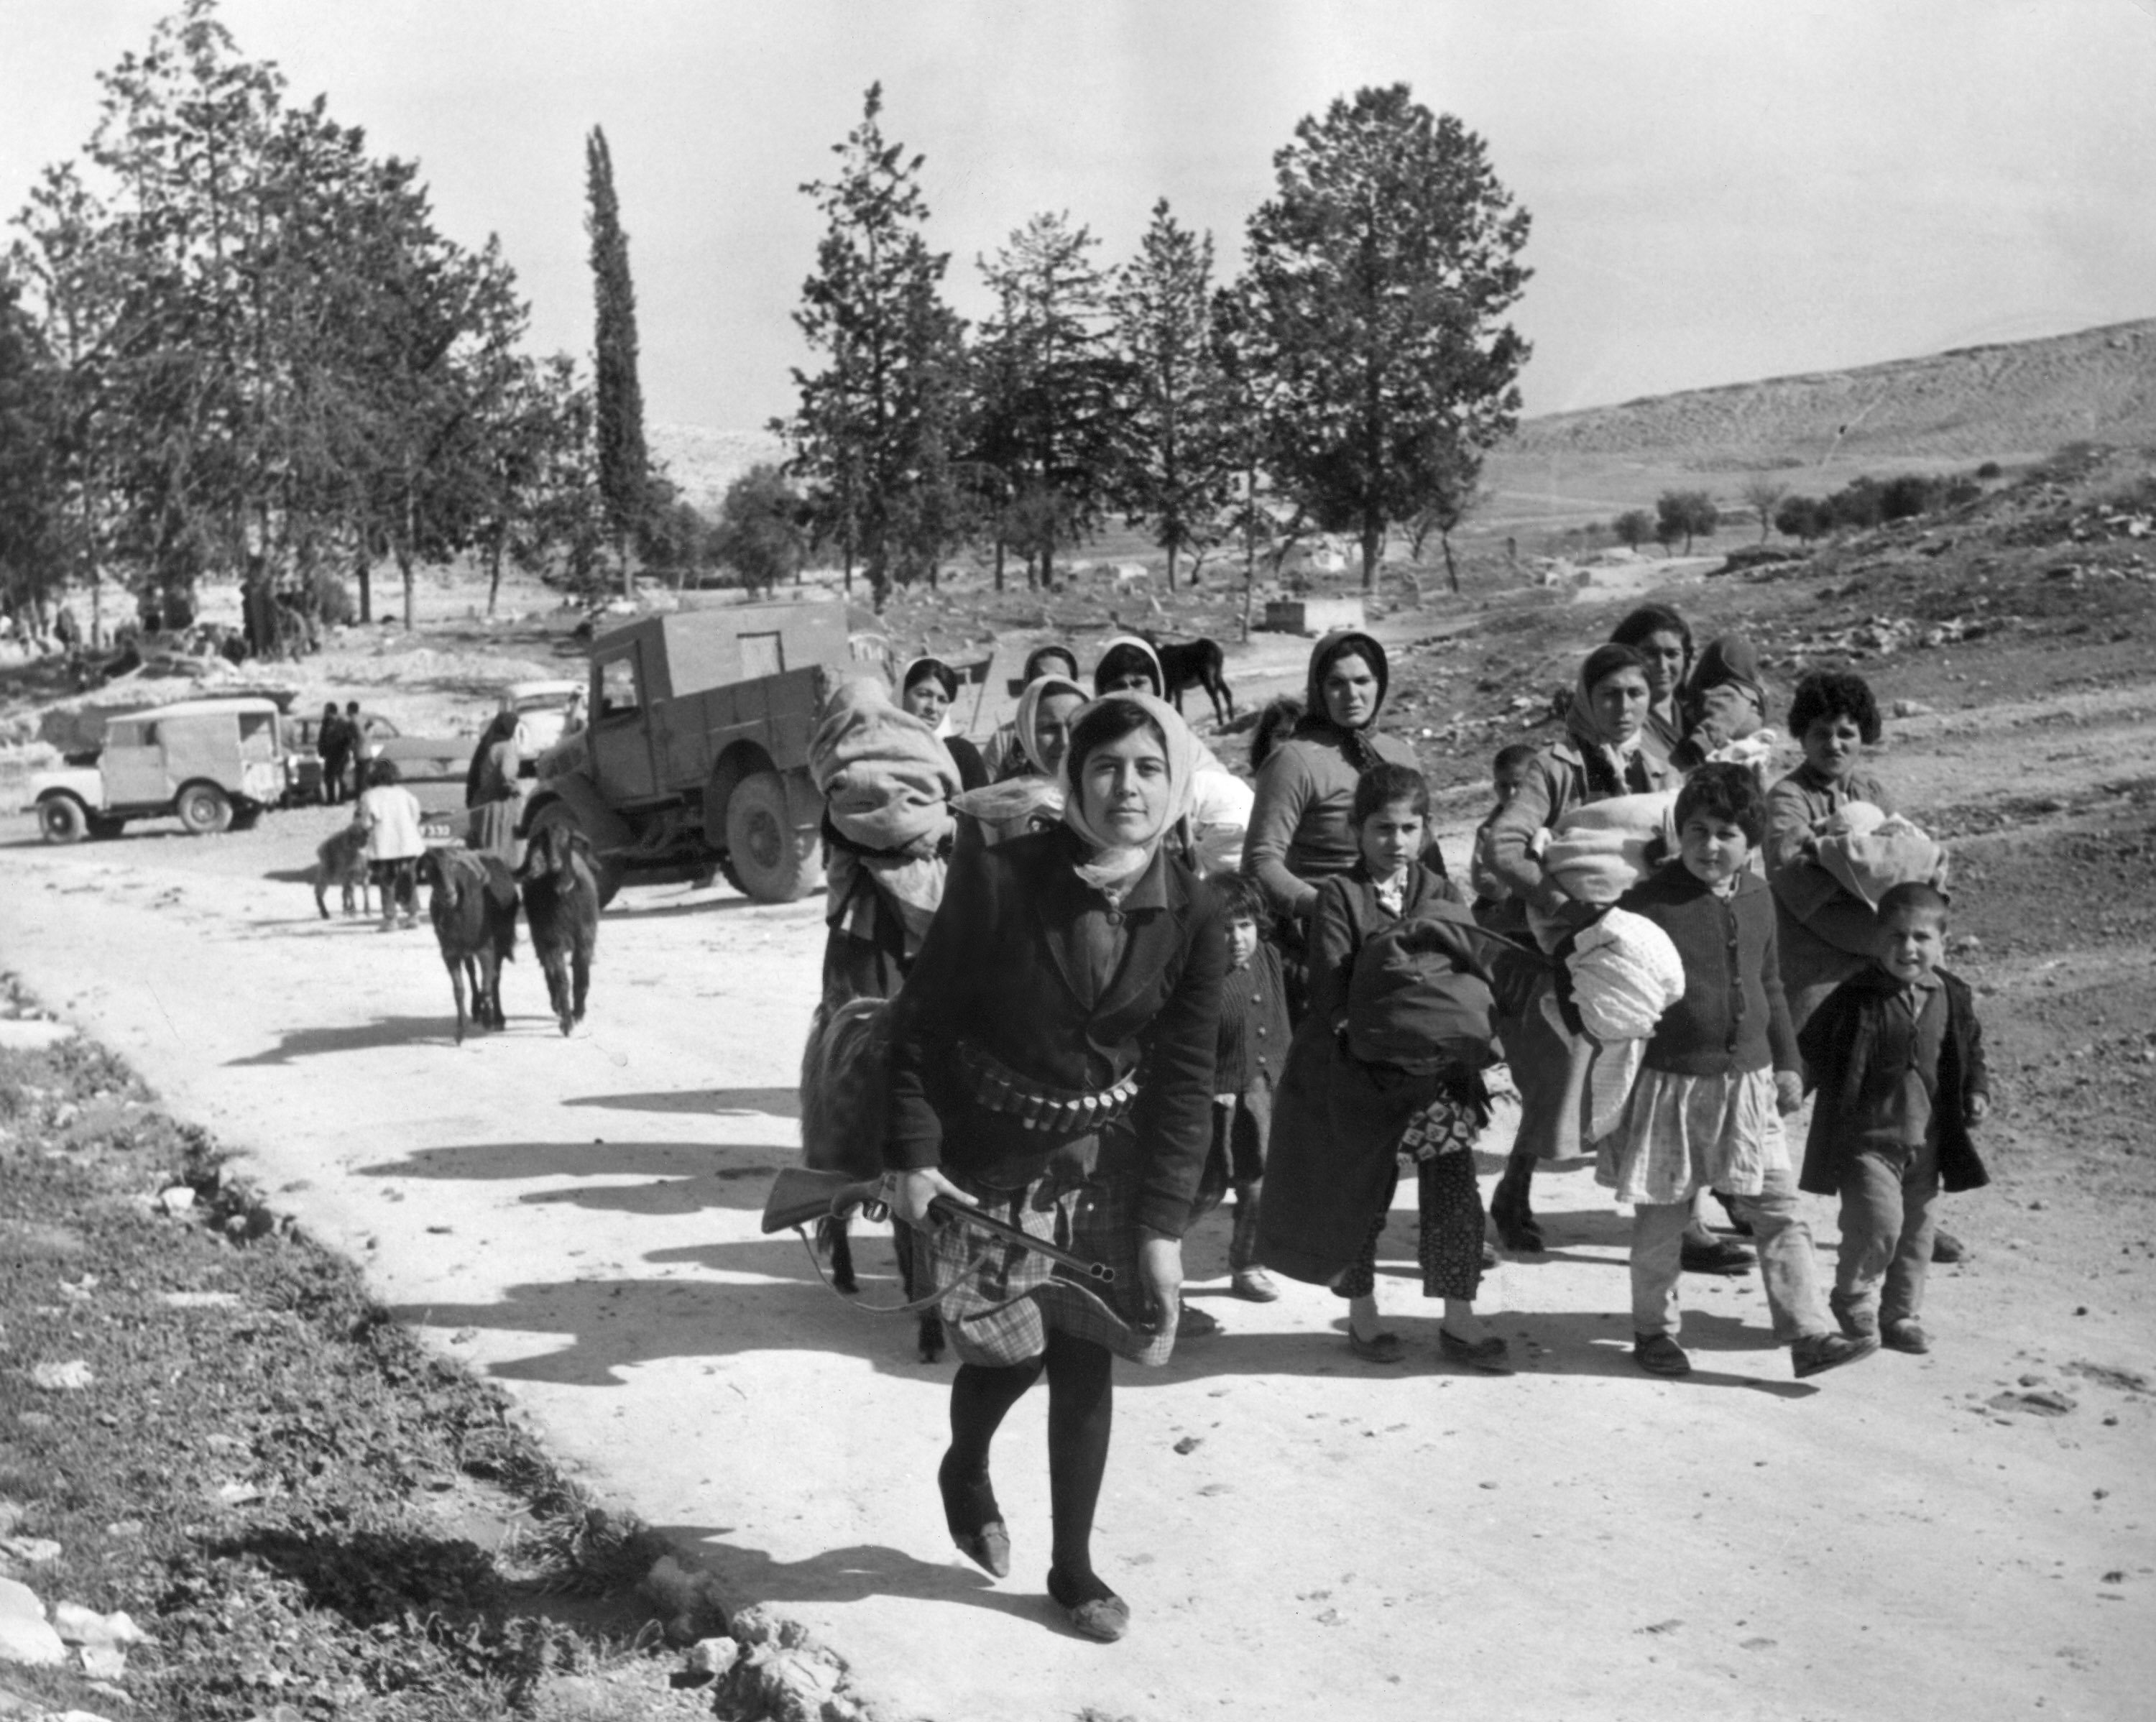 Armed with a double-barreled shotgun, a young Turkish Cypriot leads women and children from the village of Ayios Sozomenos to another nearby large Turkish village following a gun battle between Greeks and Turks on Feb. 6, 1964. About 100 women and children fled the village which had a total population of about 200 people, including 25 Greeks. (AP Photo)